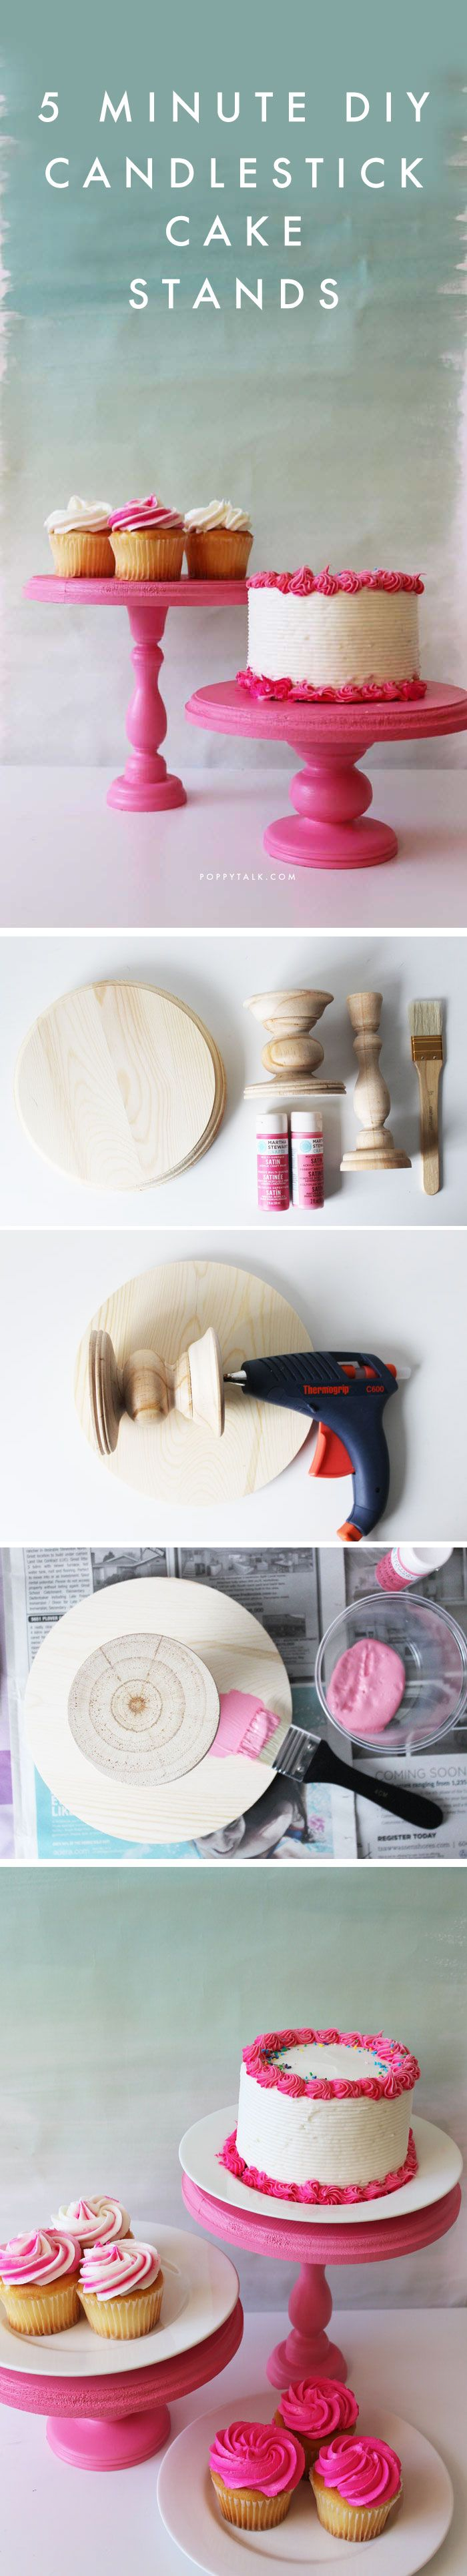 5 Minute DIY using wooden candlesticks, a round plaque and a glue gun! So easy a...